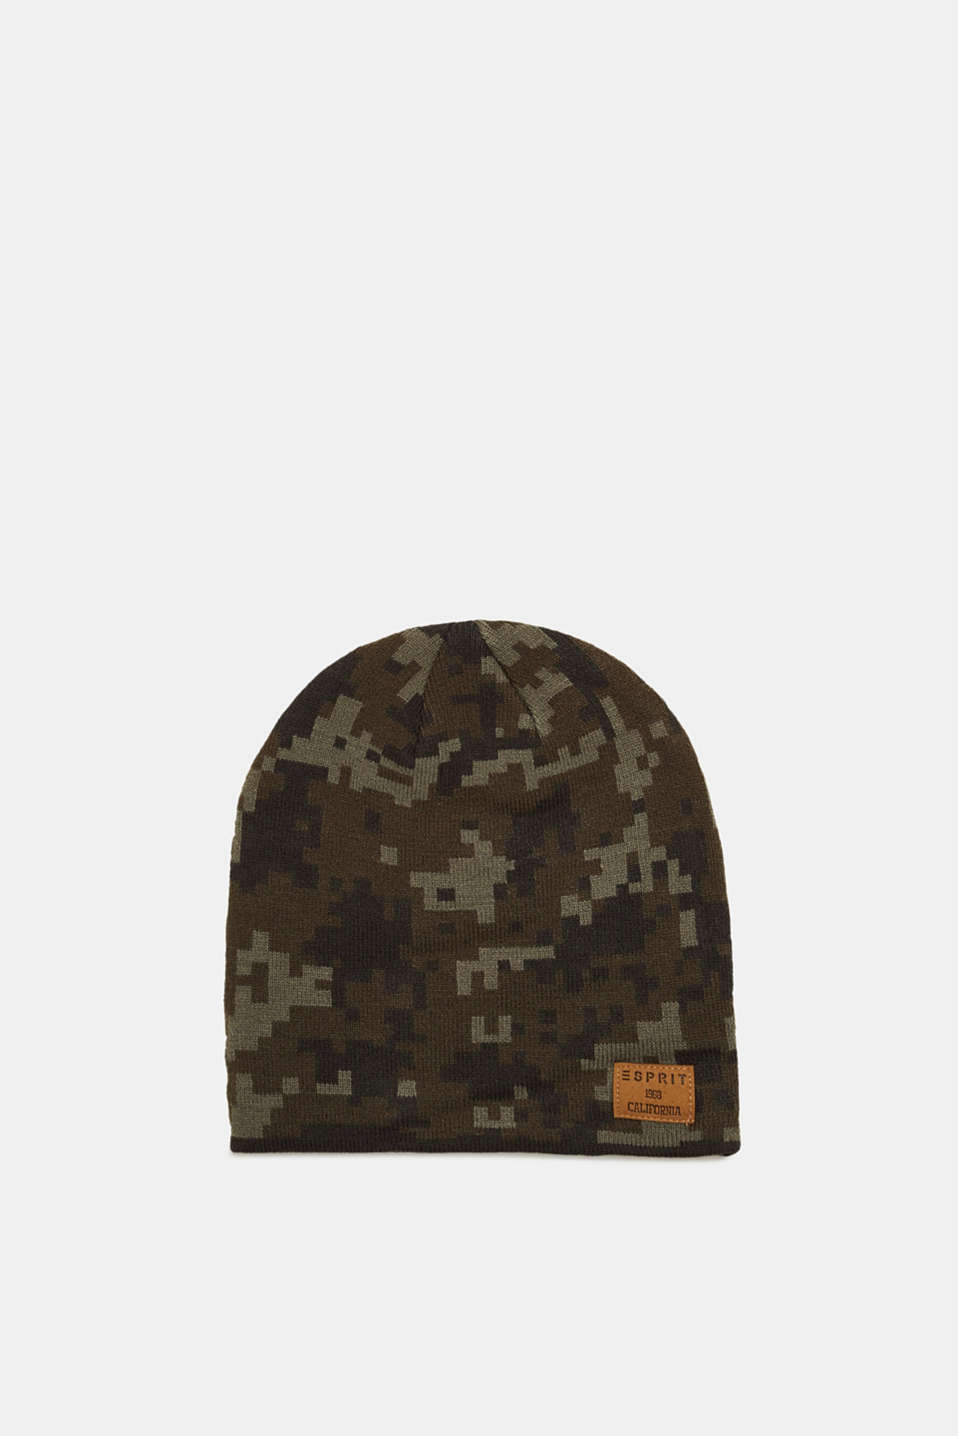 Esprit - Cap with a pixelated pattern